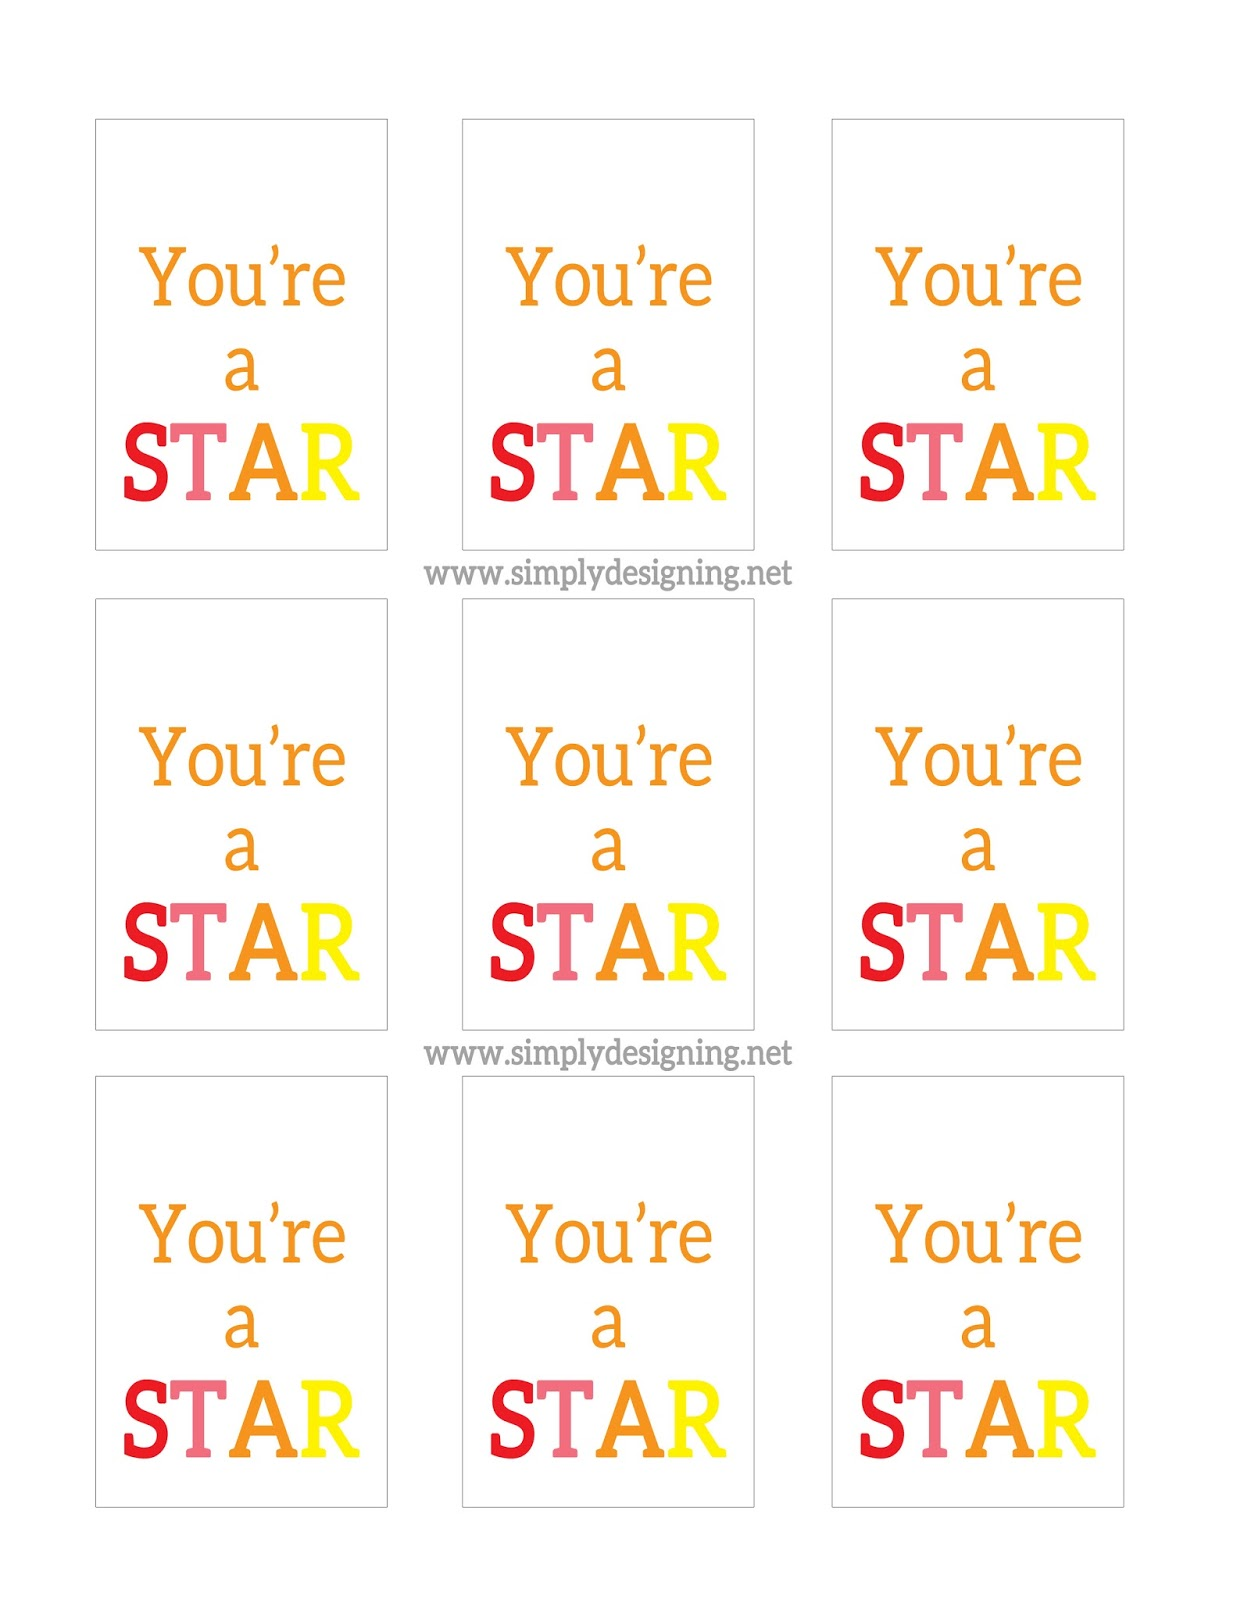 FREE PRINTABLE: Quick and Simple Gift Idea: You're A Star with FREE Printable | perfect quick gift idea for graduation, teacher appreciation, mother's day, father's day, recitals or end of the year programs! | It's really simple to put together and is so cute and customizable too!  | #DuckTape #HandmadeGift #Gift #Printable #spon